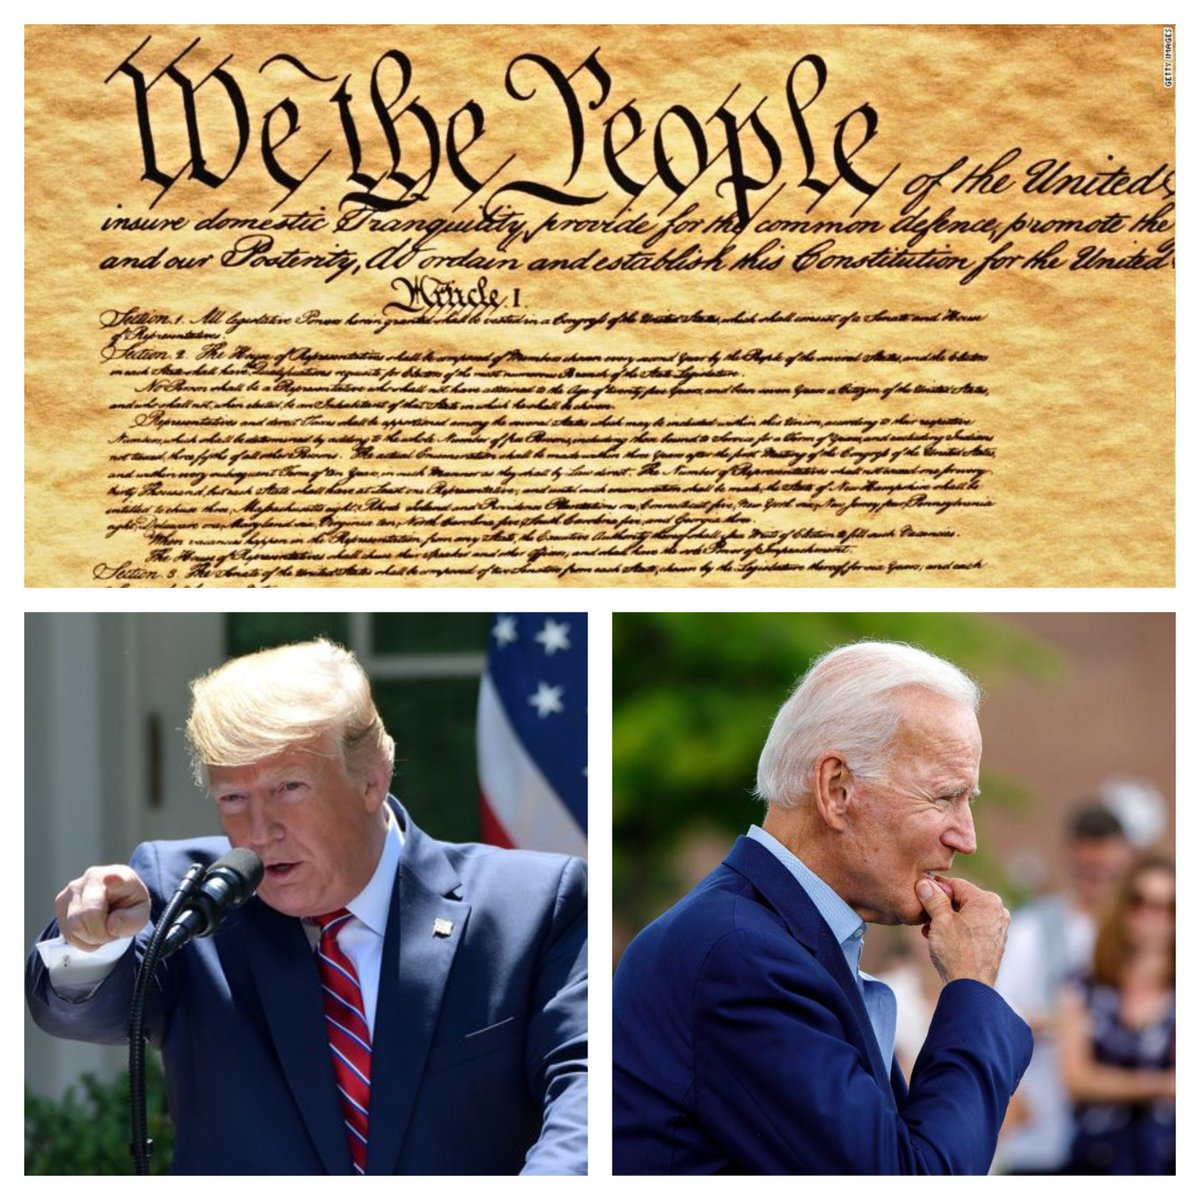 🎙💥This wk @PasReport: Prof. Giordano examines how the #Constitution is on the ballot for #2020Election. The far-left has called for changes to #Senate, #SupremeCourt, #ElectoralCollege, #1A, & #2A.💥 #America #Politics #Government #Analysis #Trump⤵️ podcasts.apple.com/us/podcast/the…